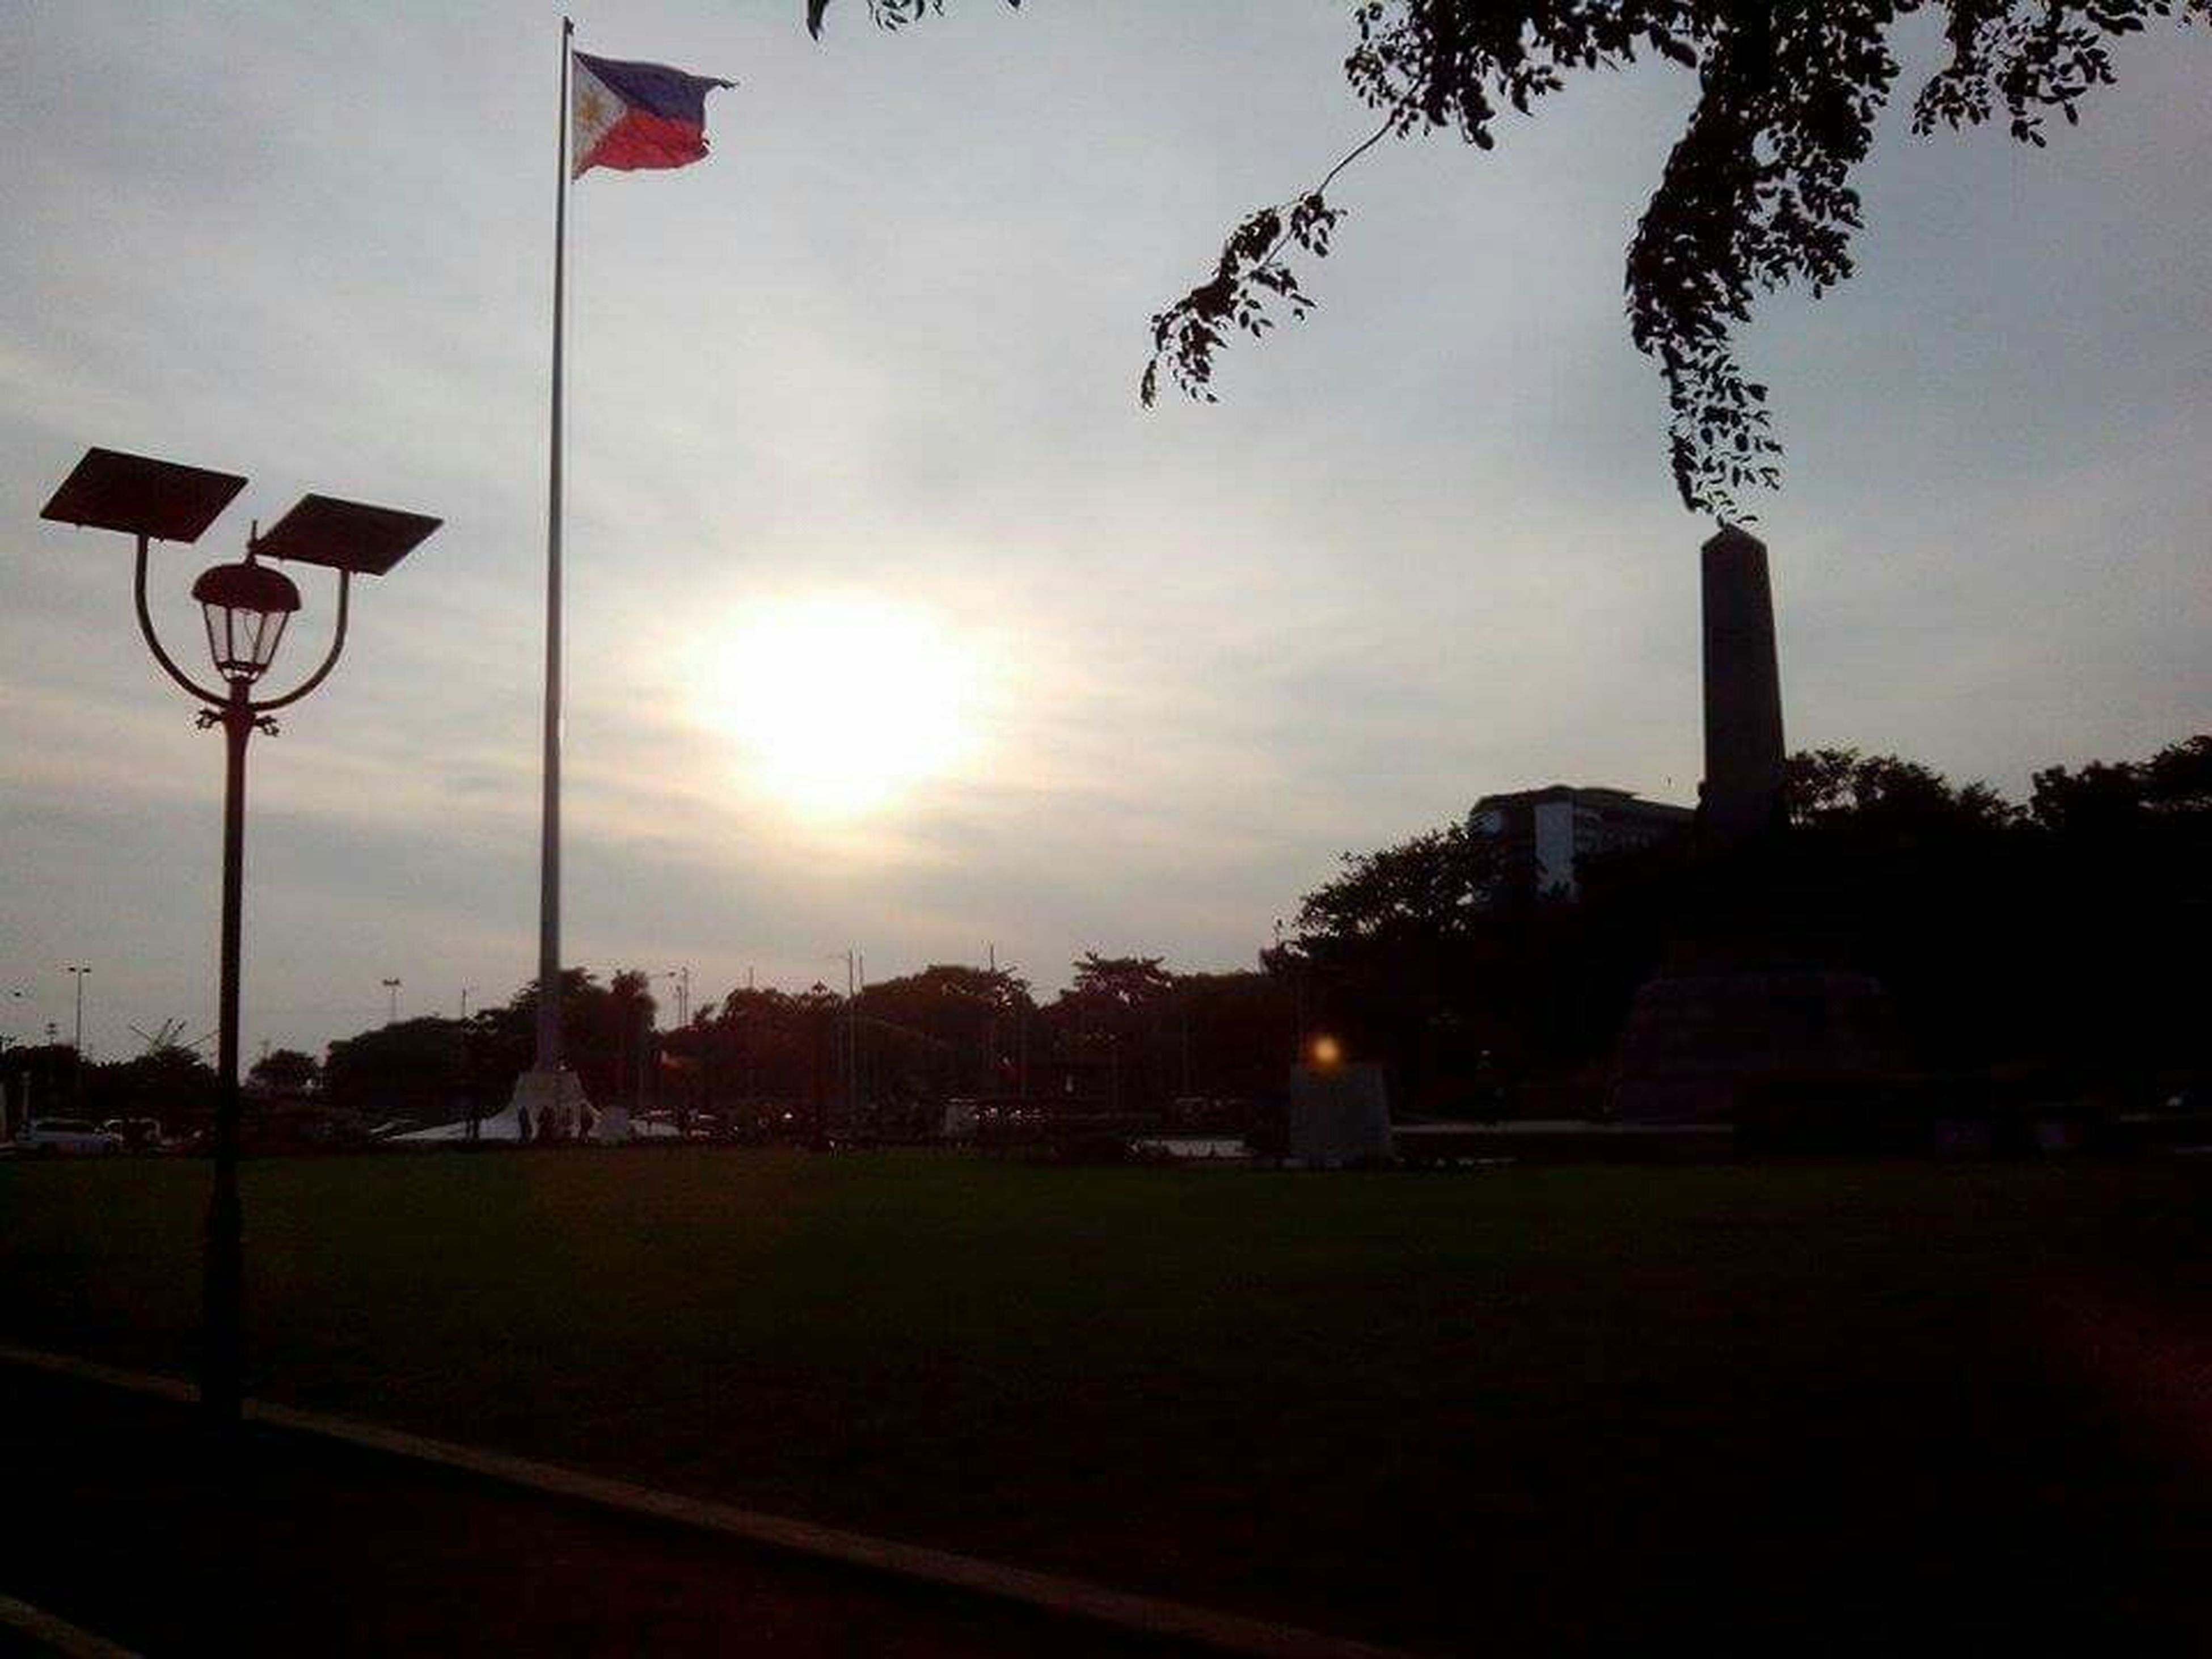 sun, tree, sky, street light, sunlight, sunbeam, sunset, lens flare, grass, built structure, building exterior, architecture, cloud - sky, park - man made space, flag, nature, outdoors, silhouette, pole, no people